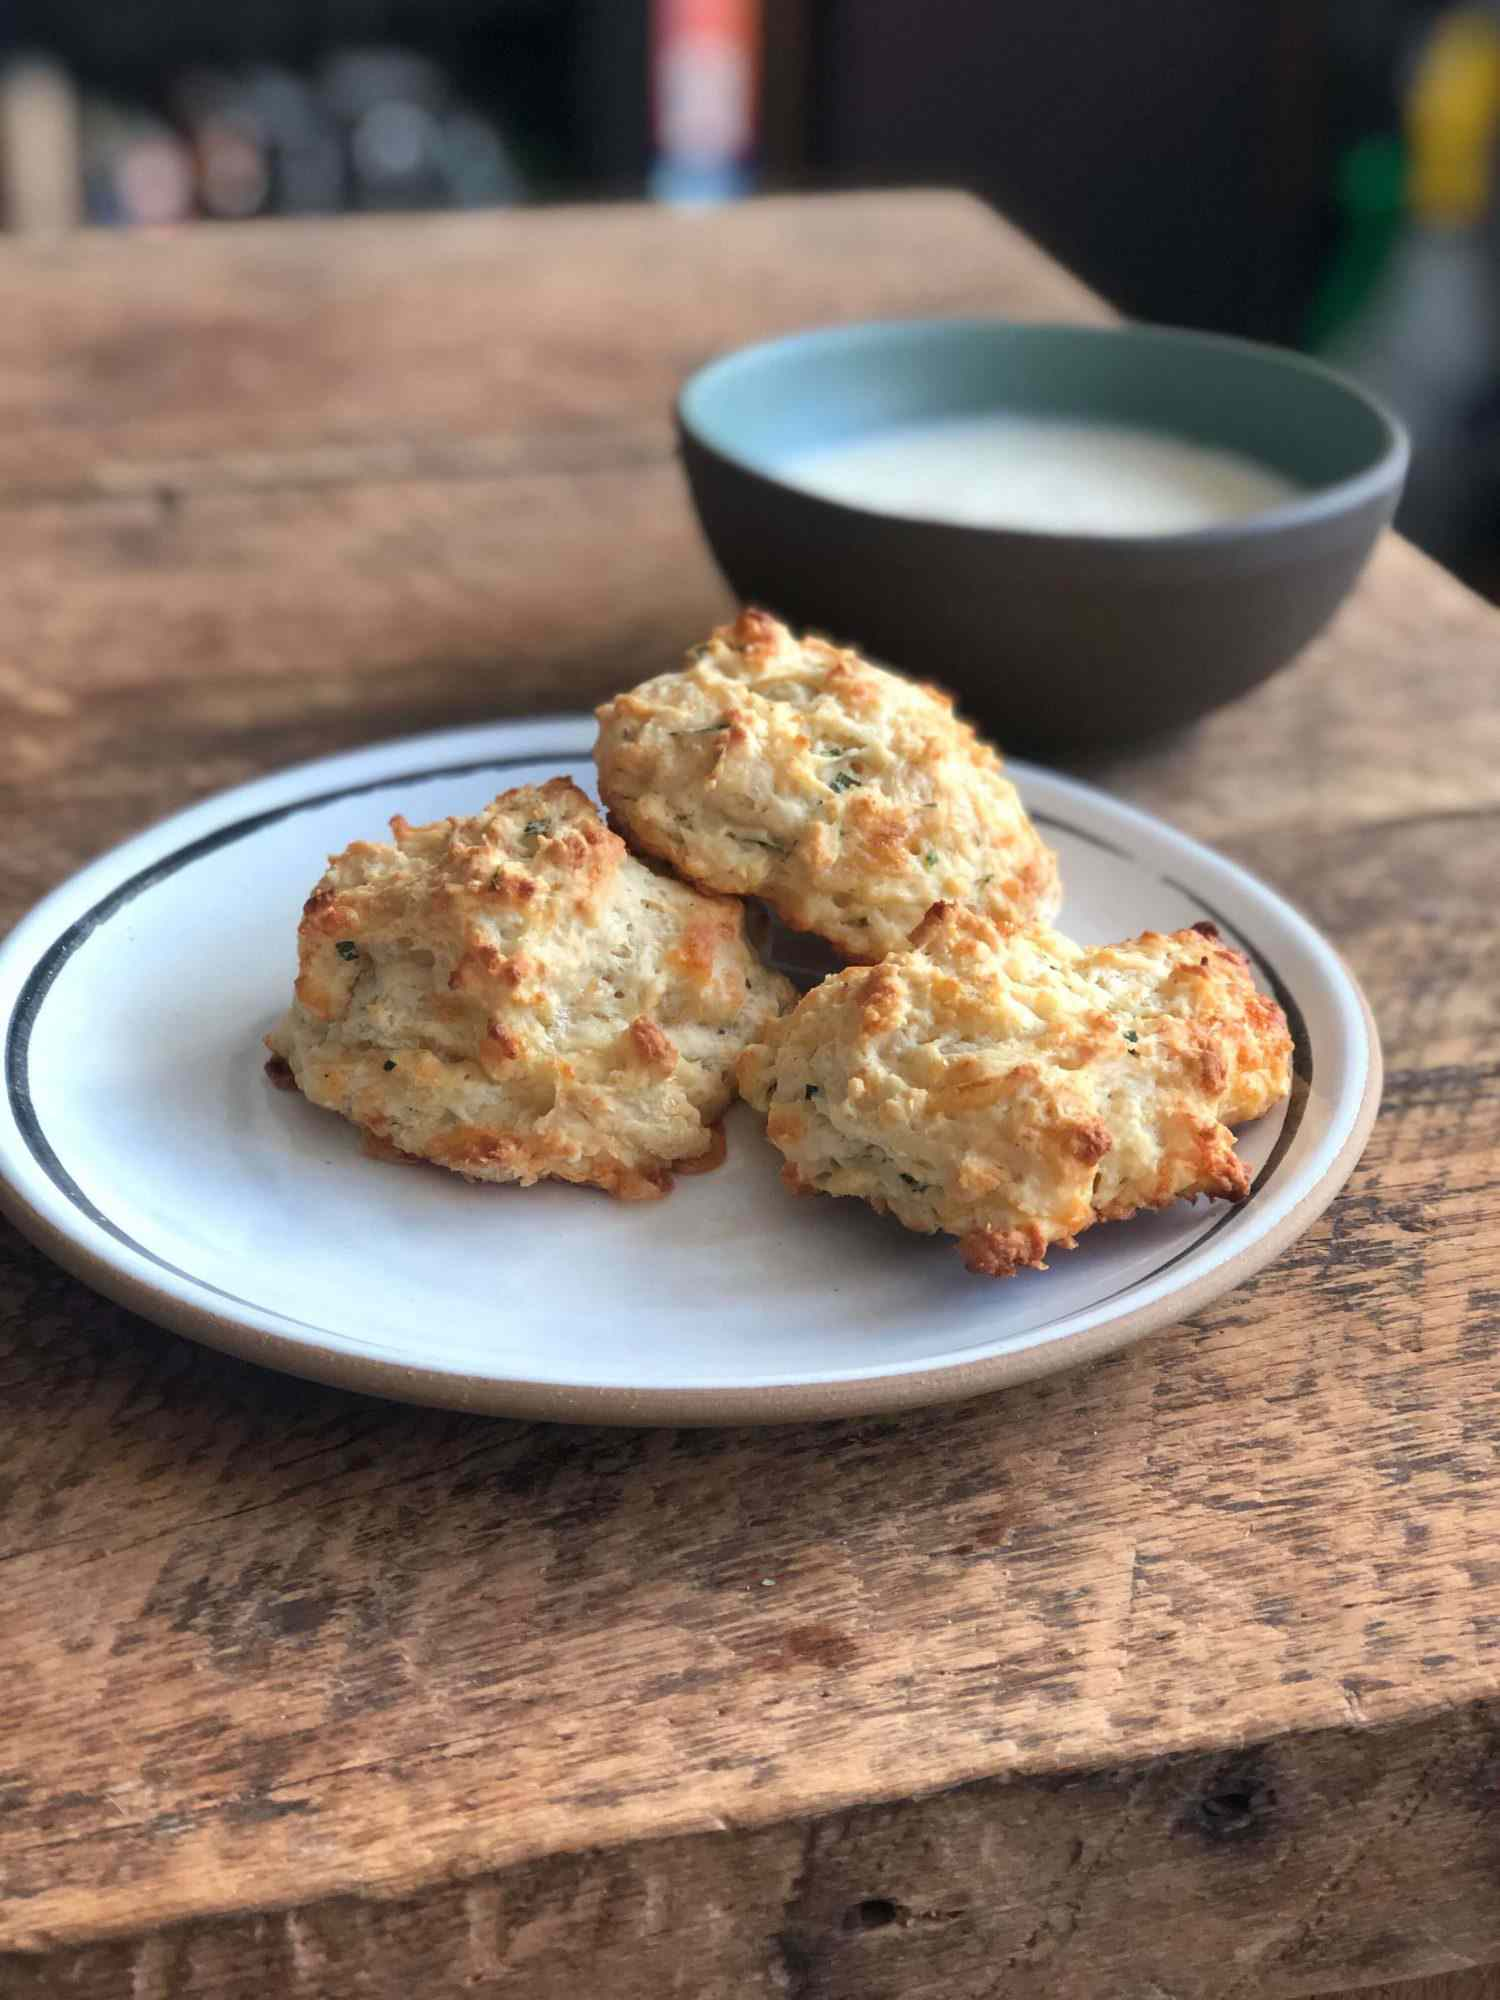 Plate of cheddar drop biscuits on a table